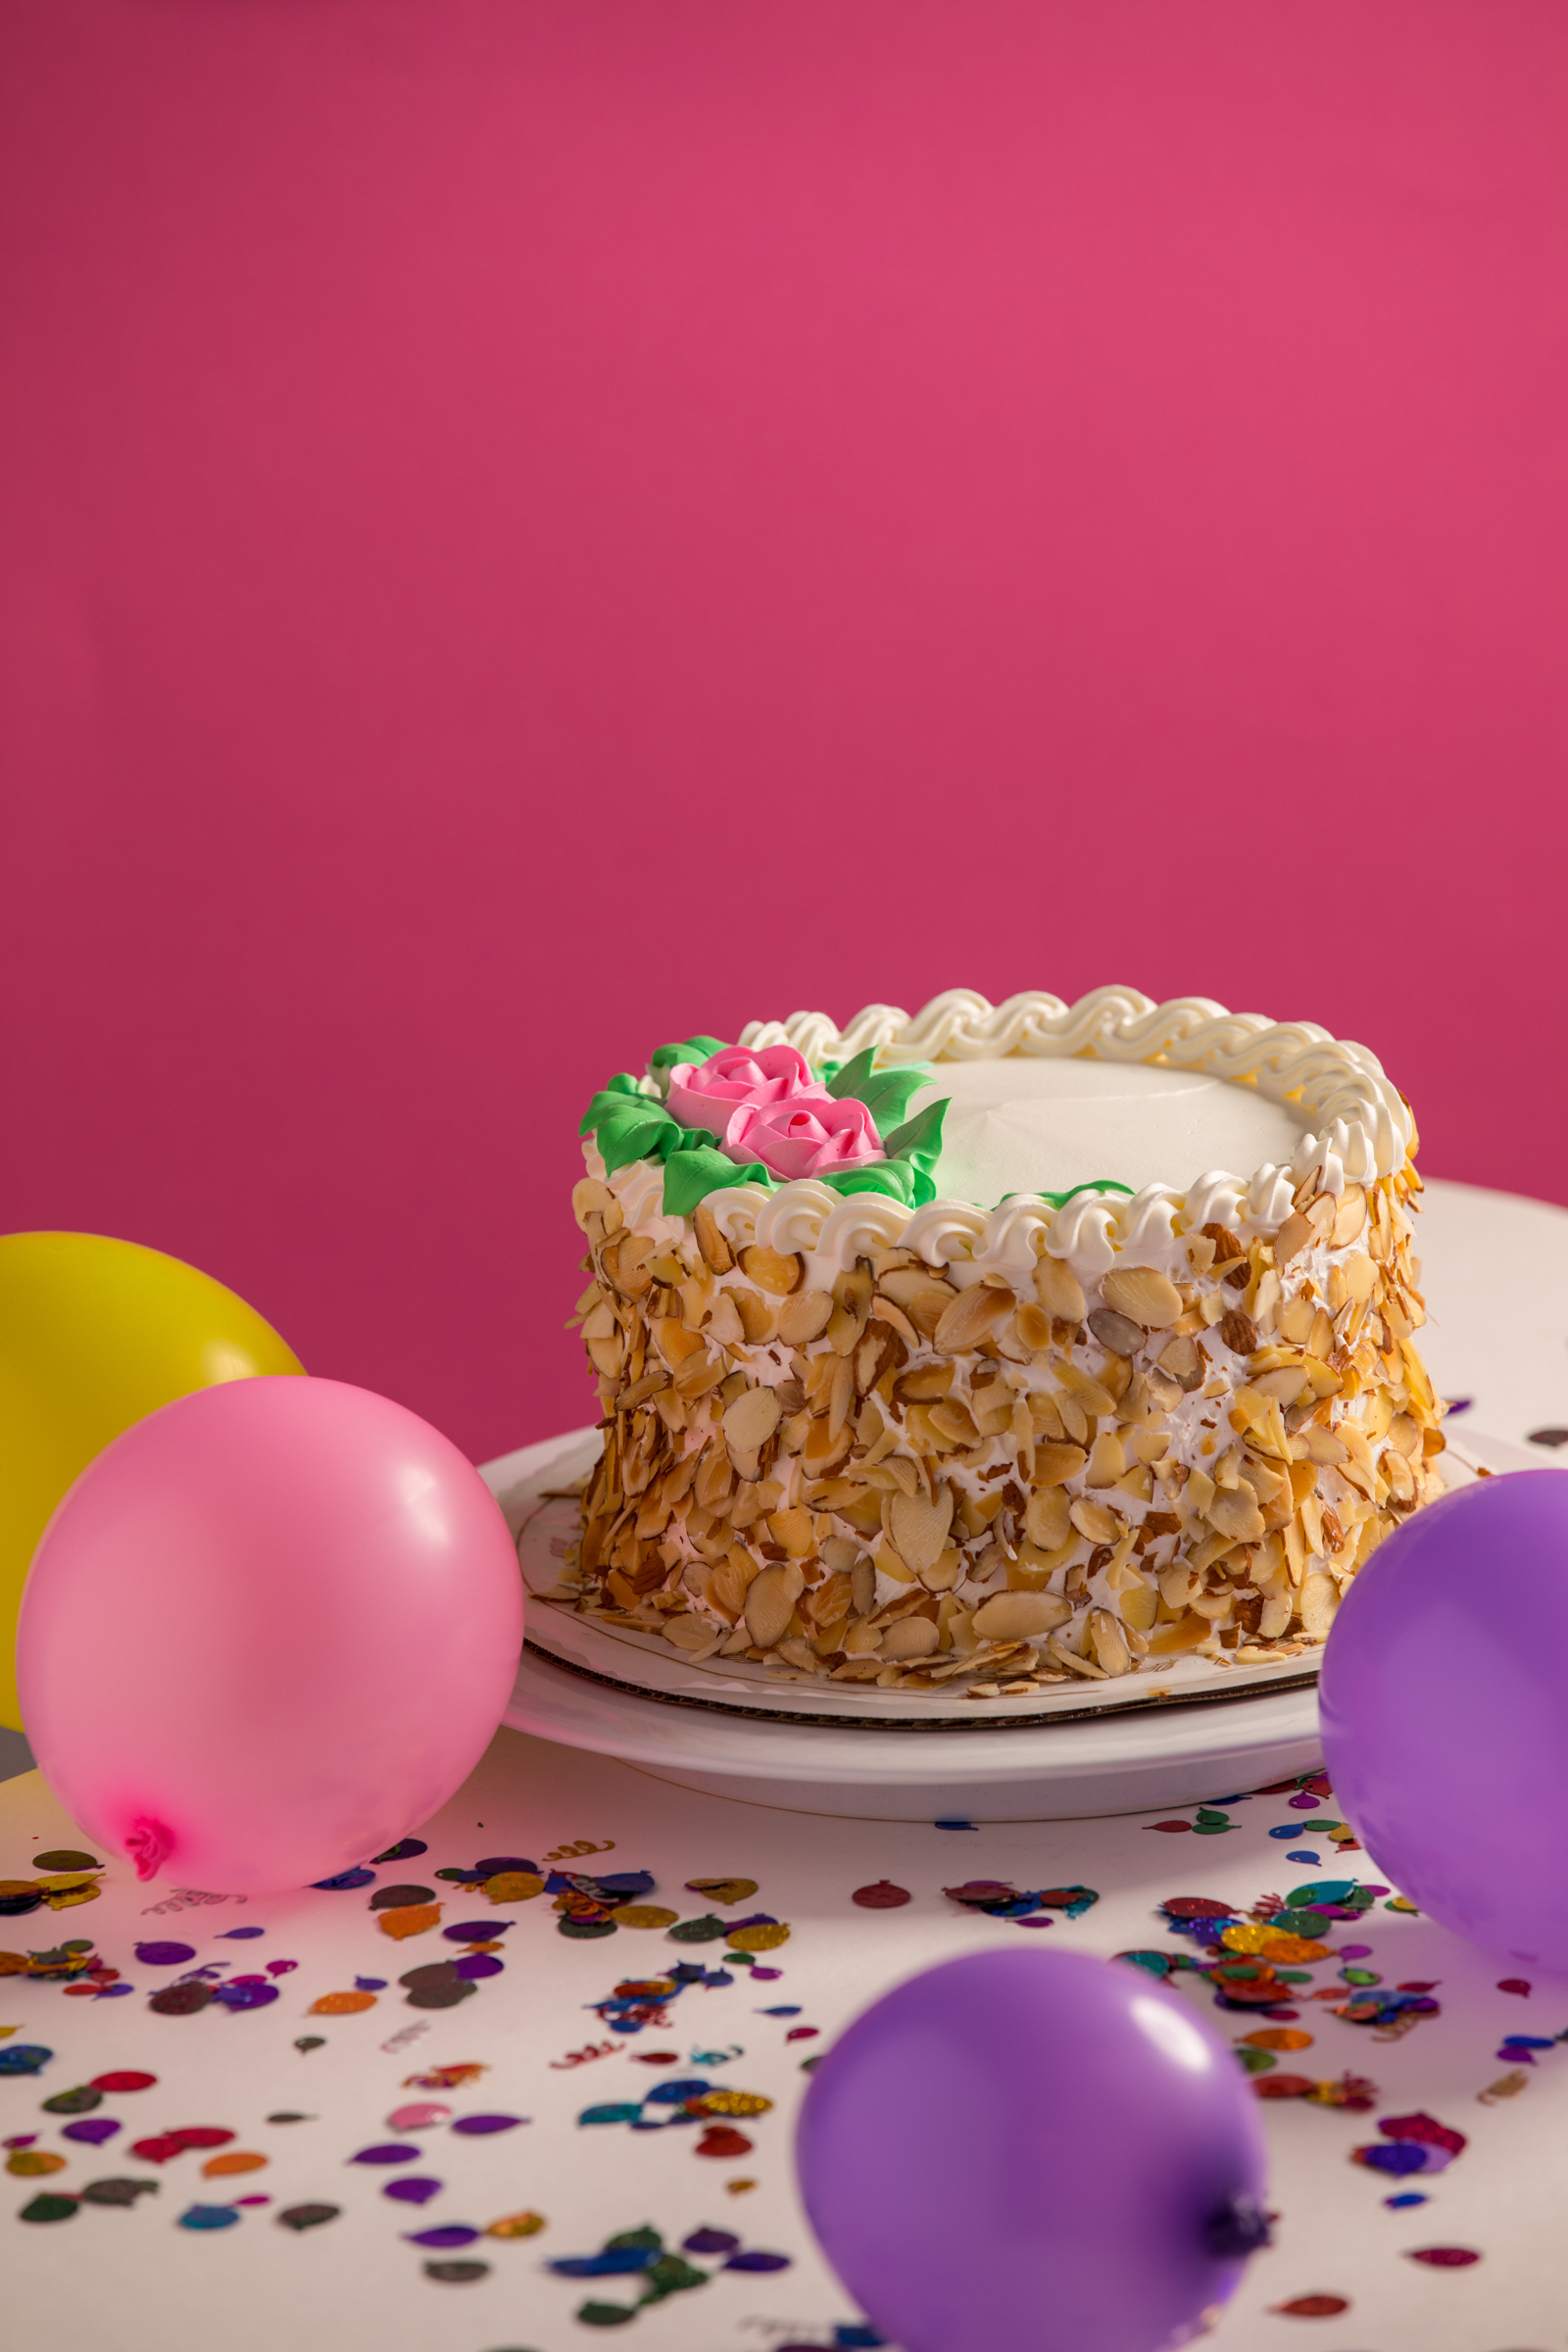 Let us help you celebrate with our famous cakes